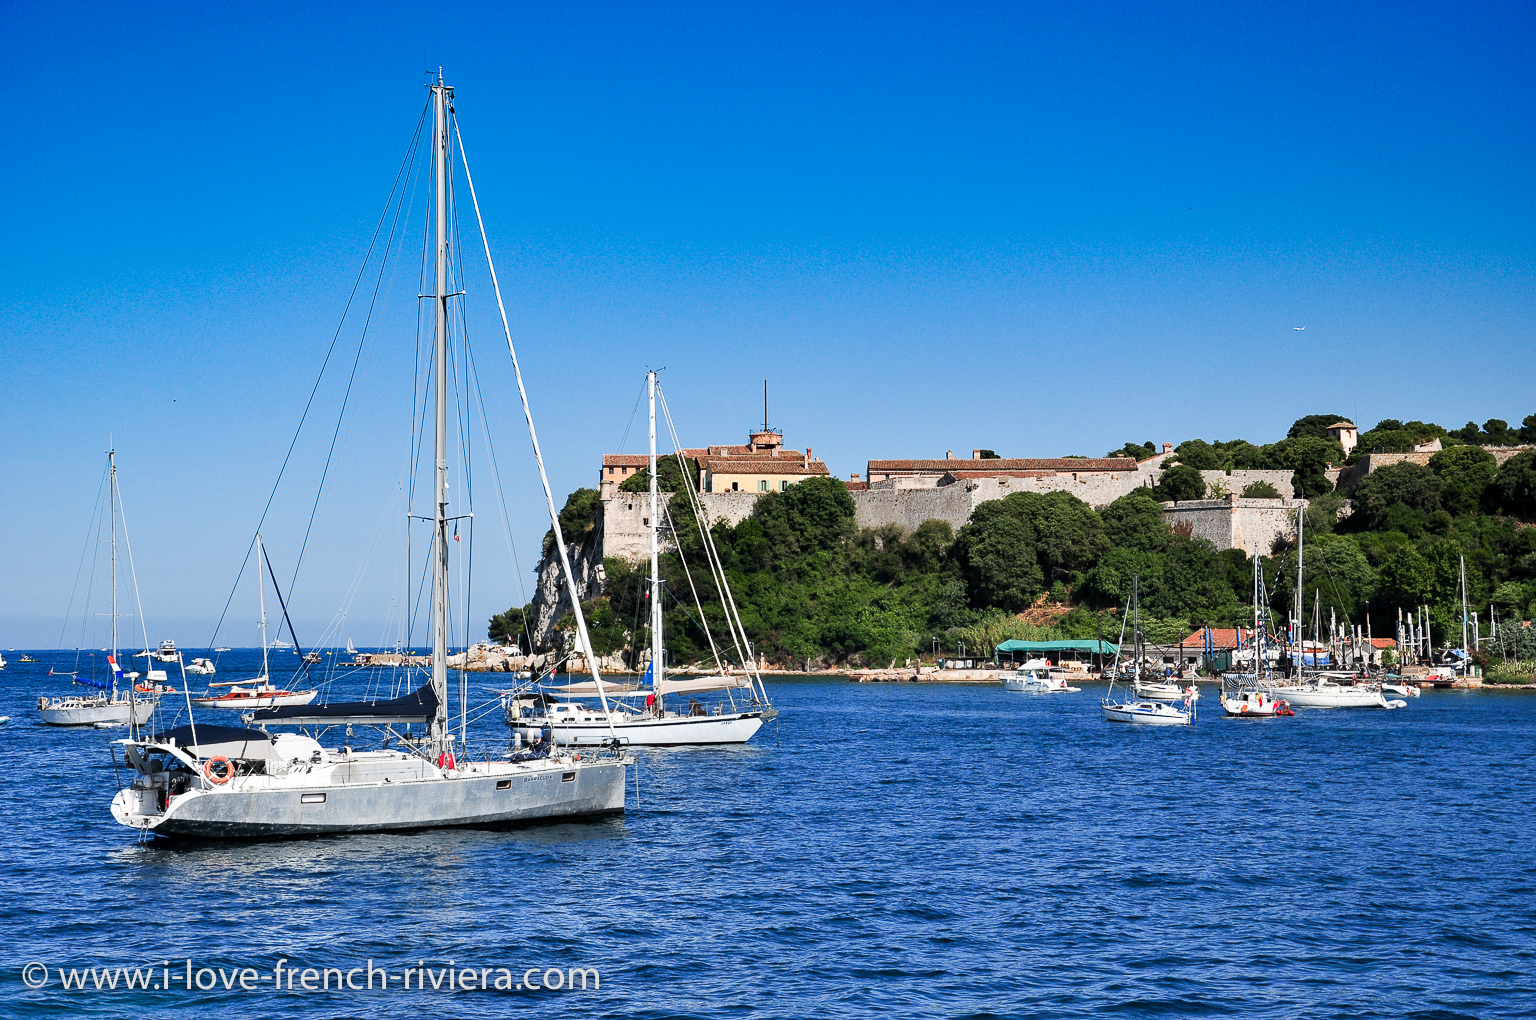 The Lérins Islands (here the St Marguerite island), Cannes, St Raphael, St Tropez and other beautiful places are close to our holiday accommodation ...